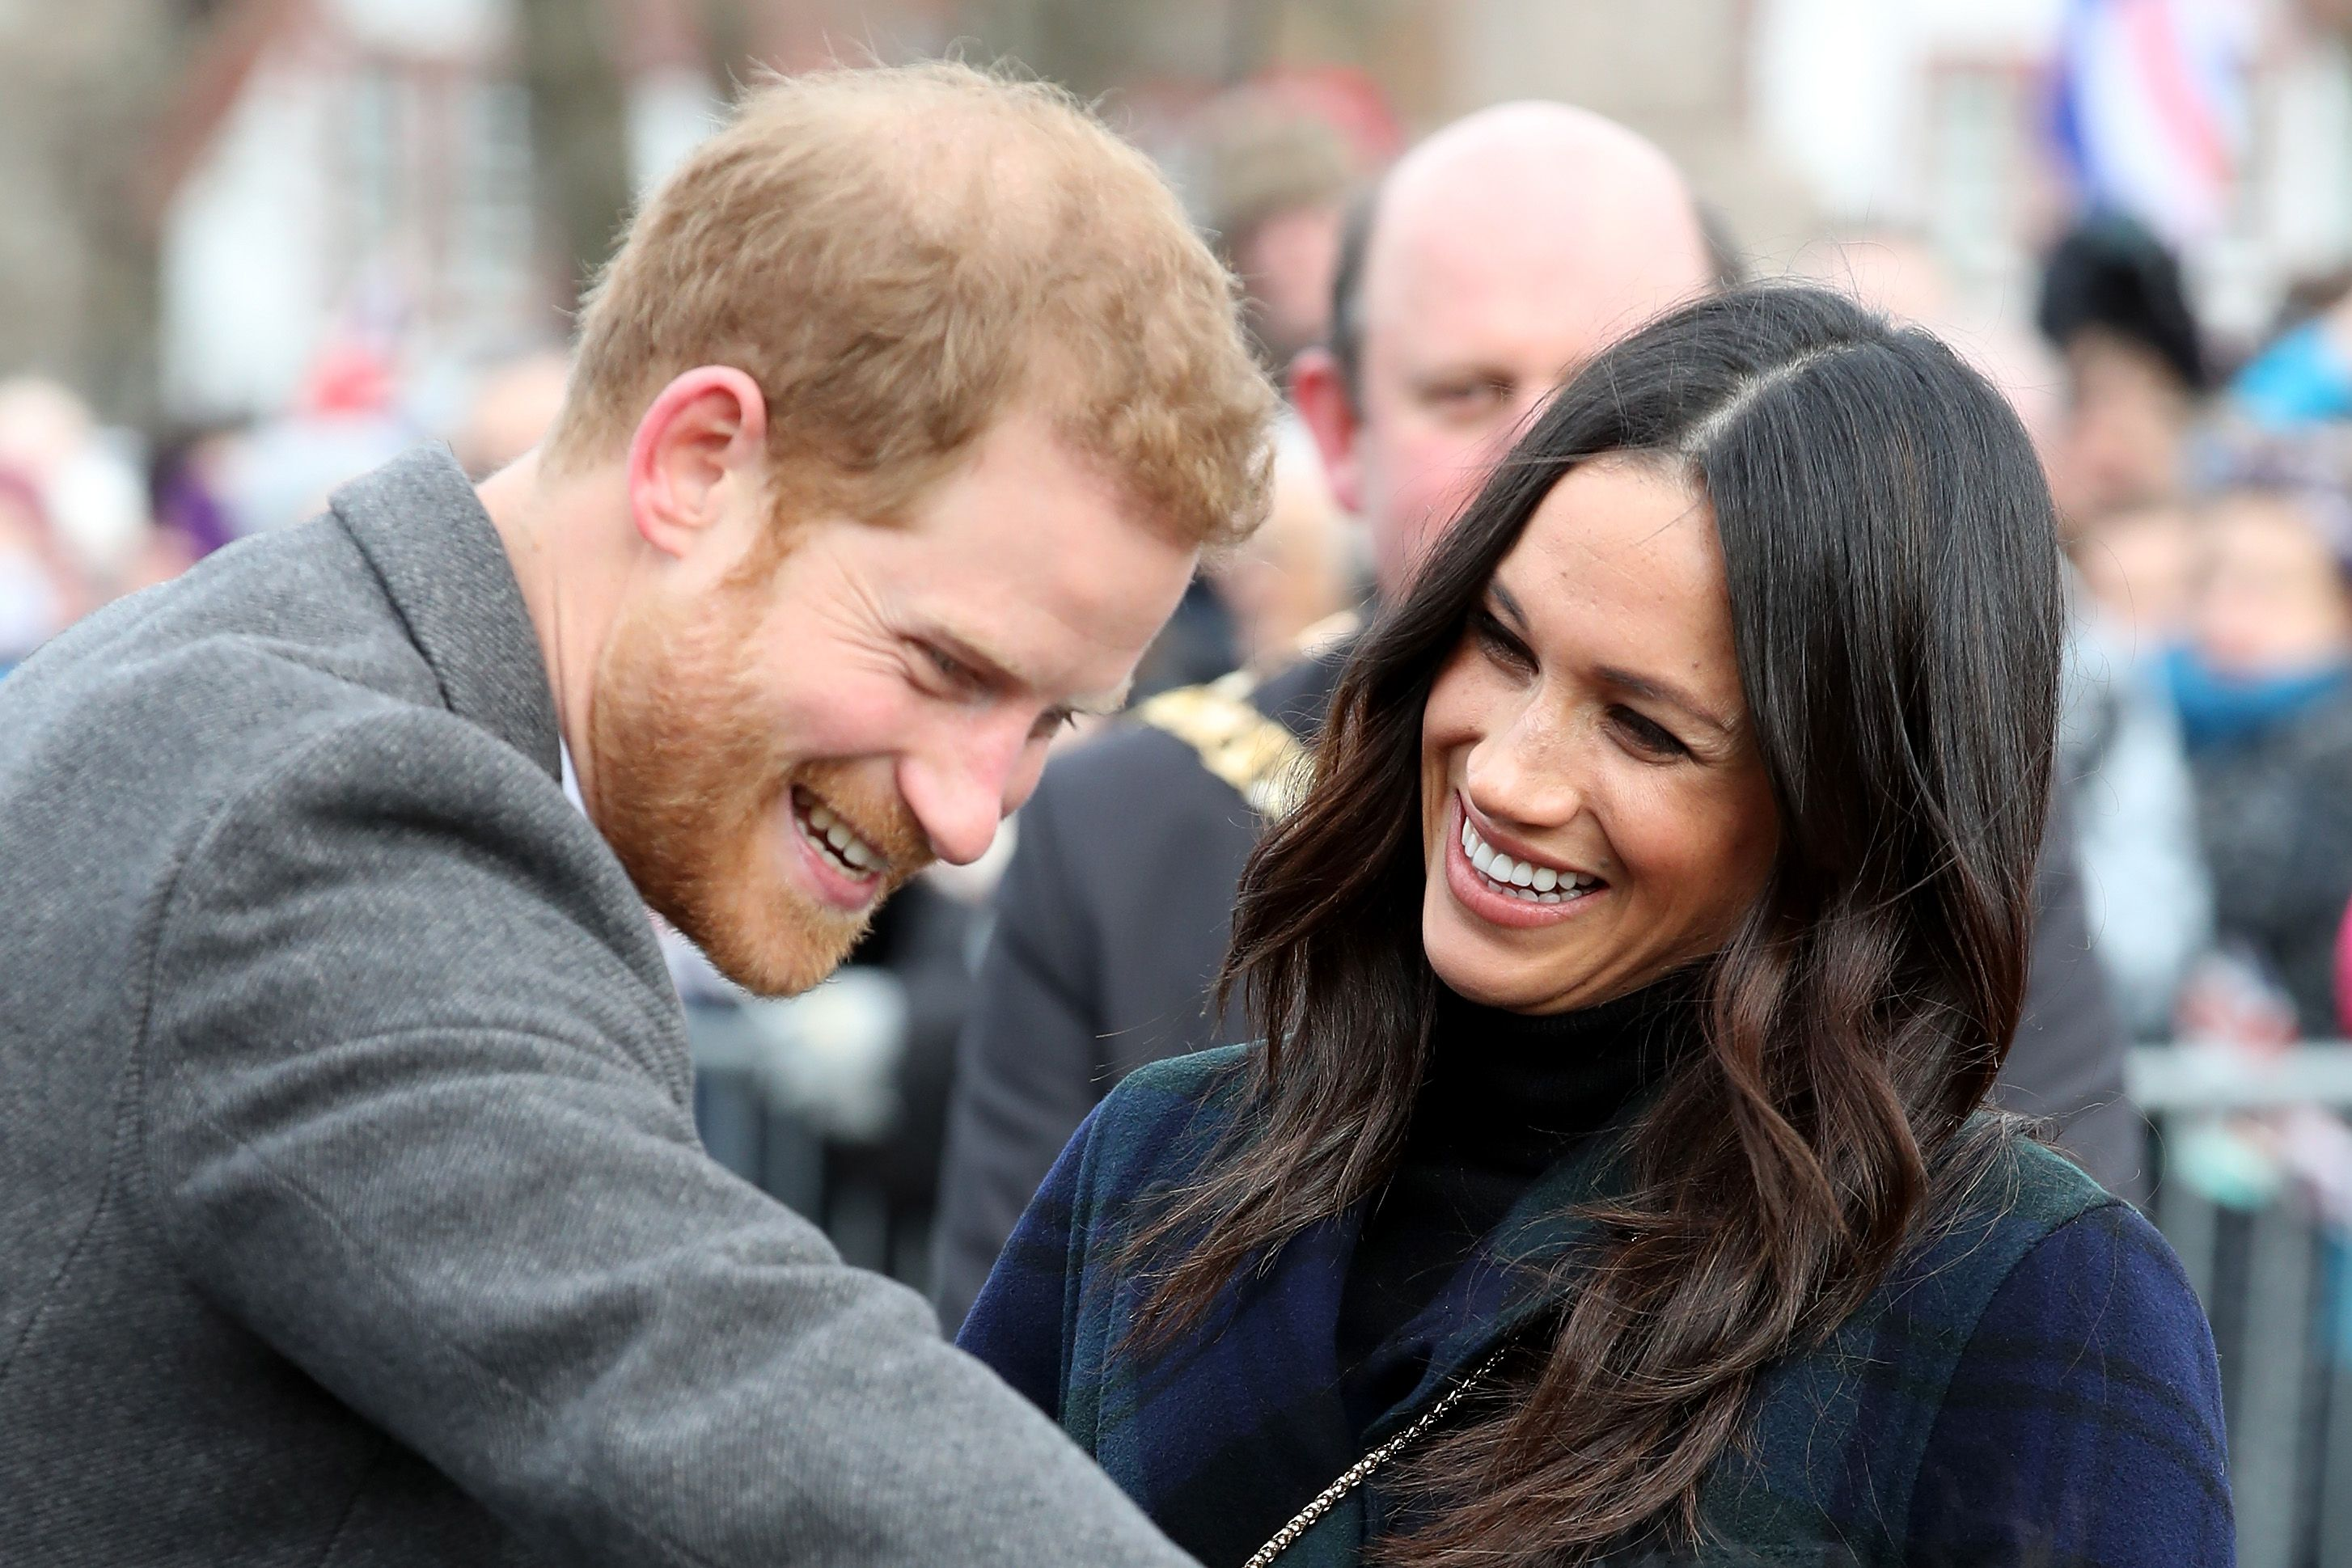 What Prince Harry And Meghan Markle's Body Language Says About Their Marriage